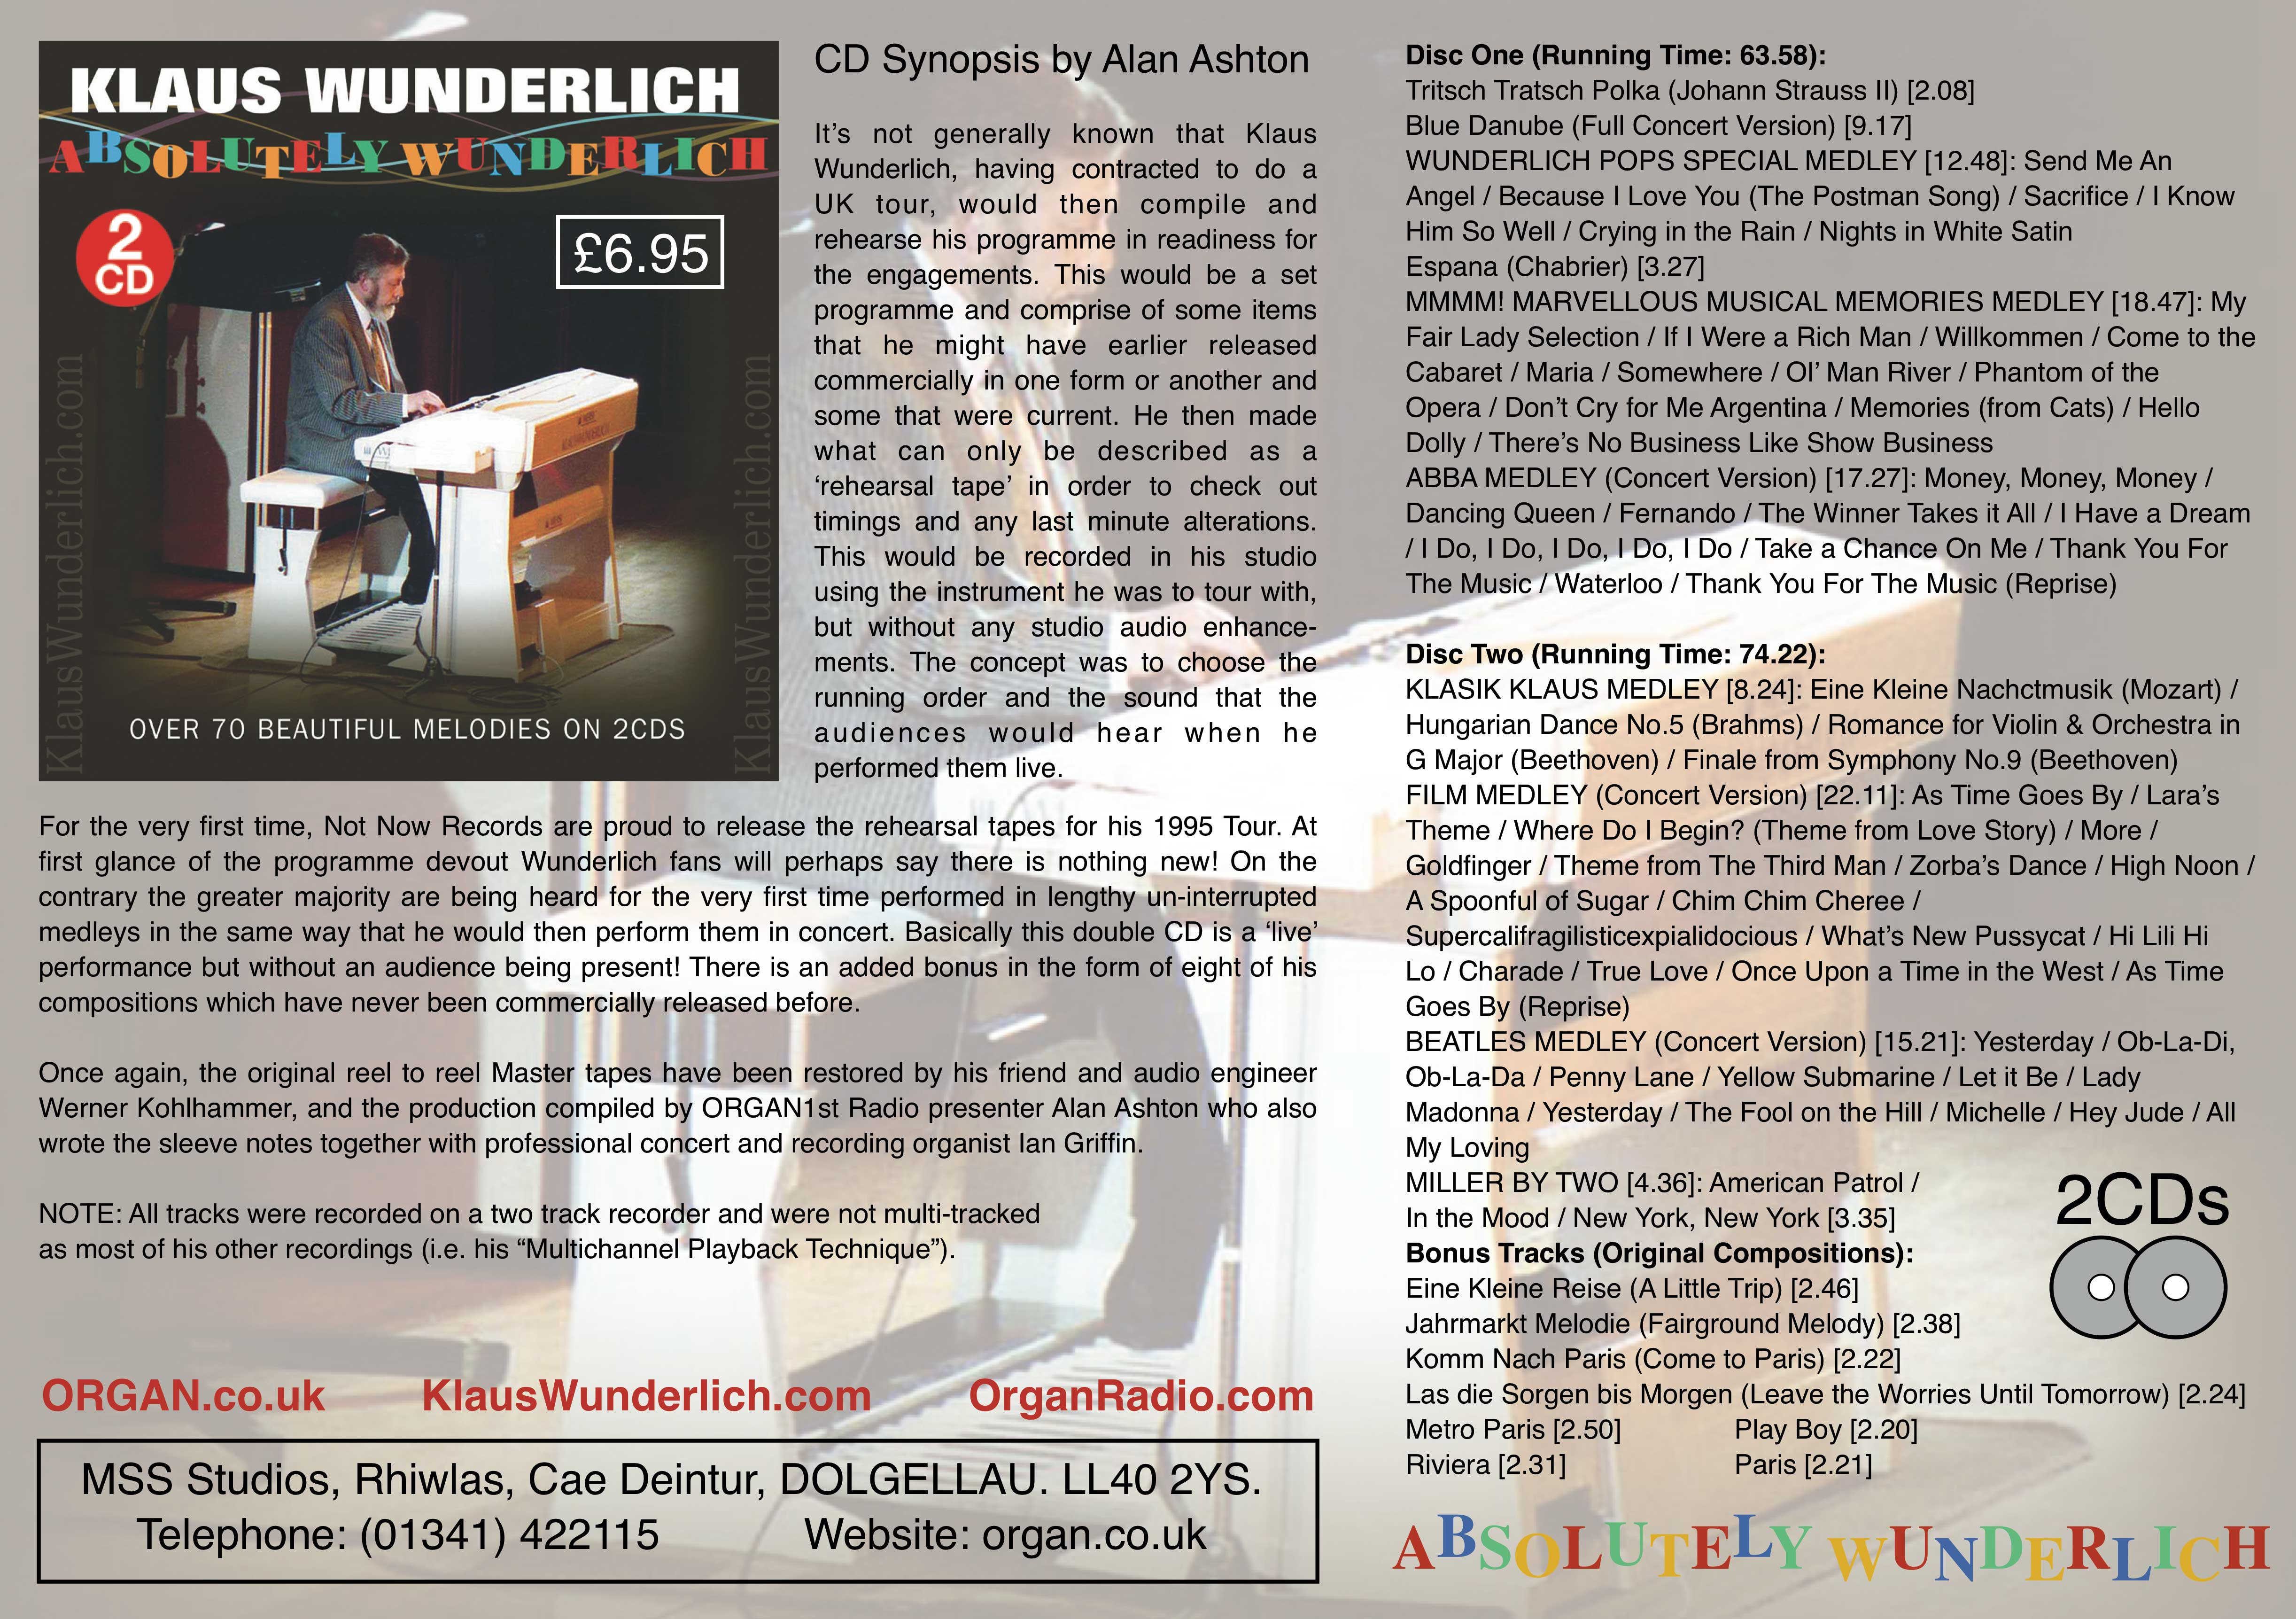 Klaus Wunderlich - Absolutely Wunderlich (Promotional Flyer)